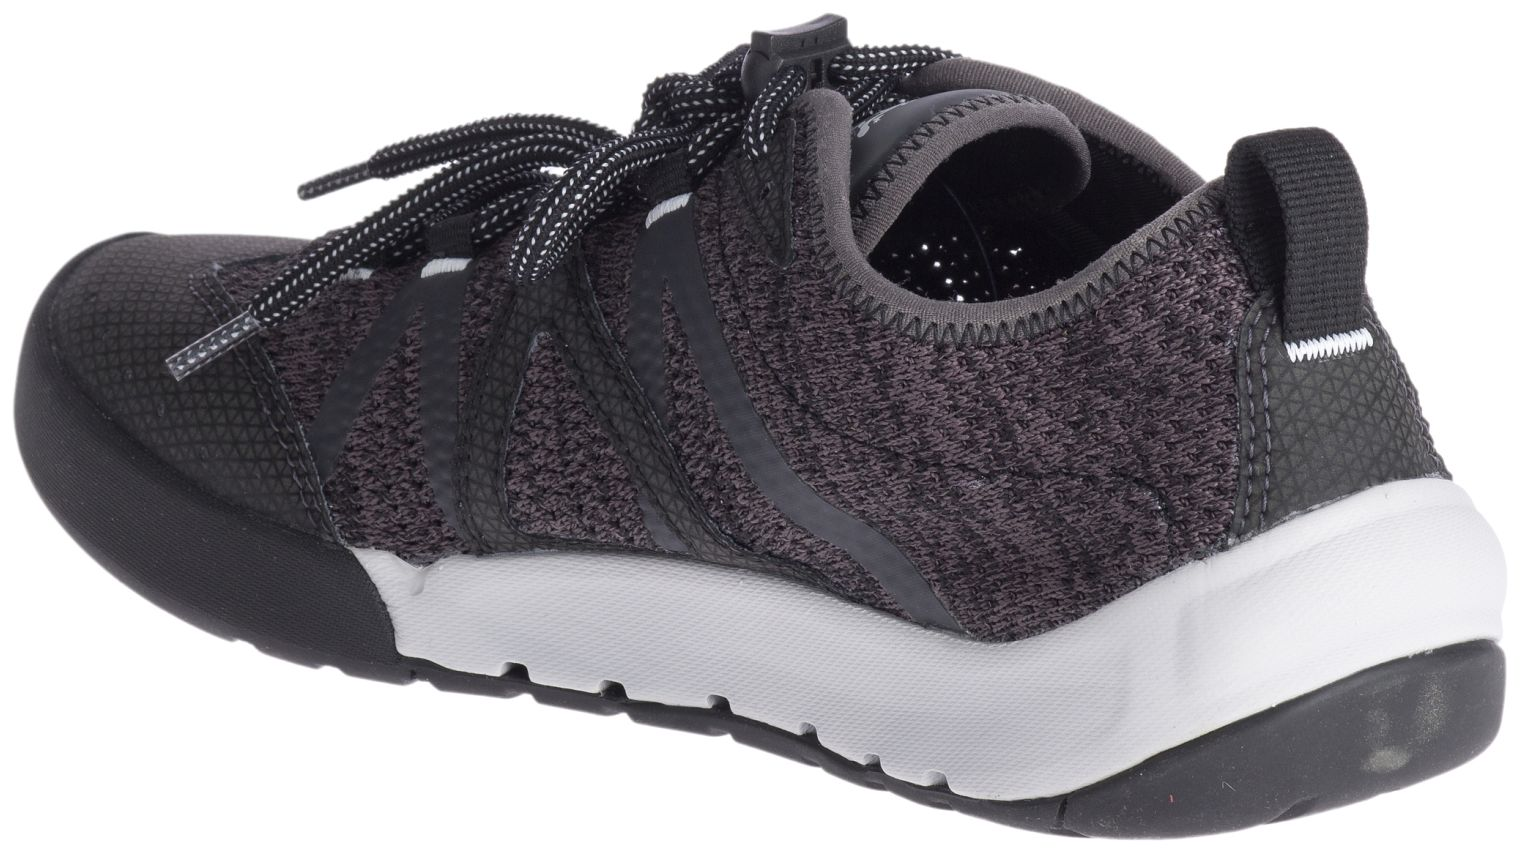 022bc81ce9da Chaco Torrent Pro Water Shoes - Men s - Gear Coop